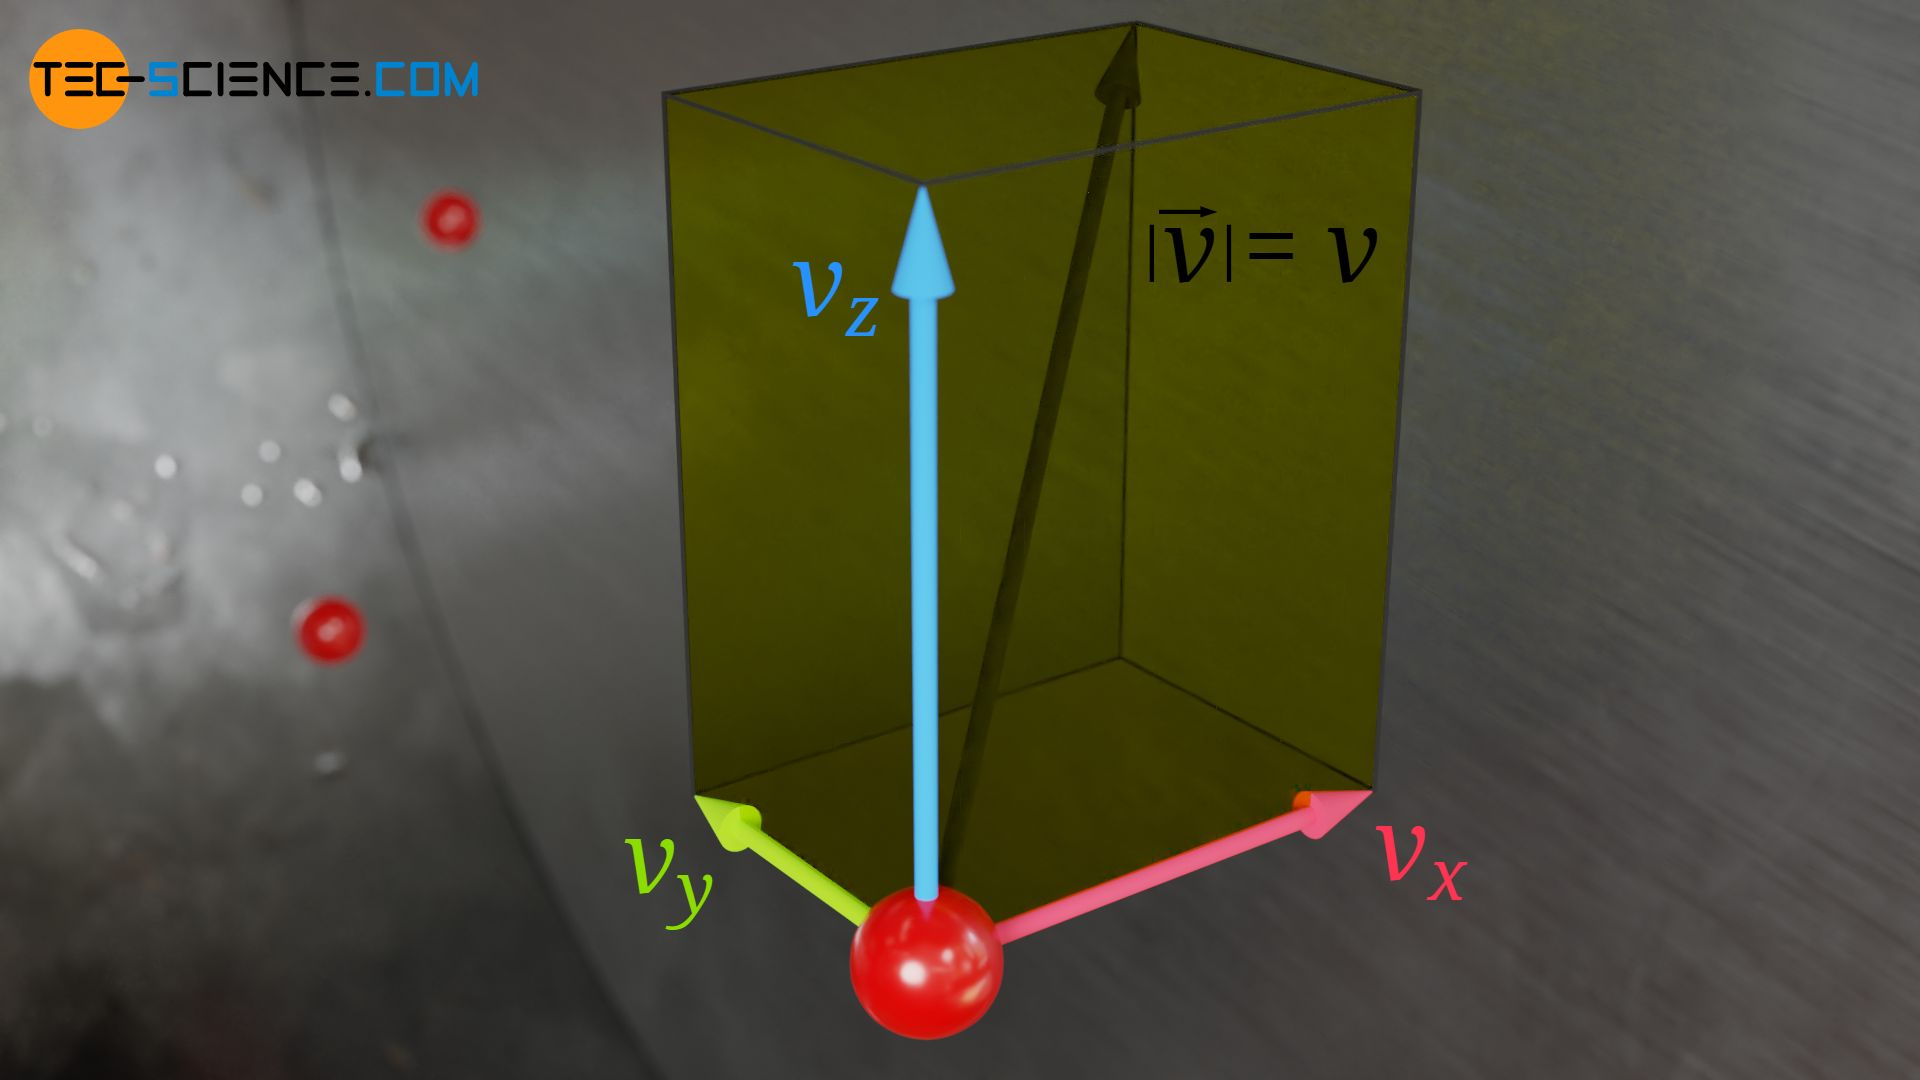 Velocity vector and its components